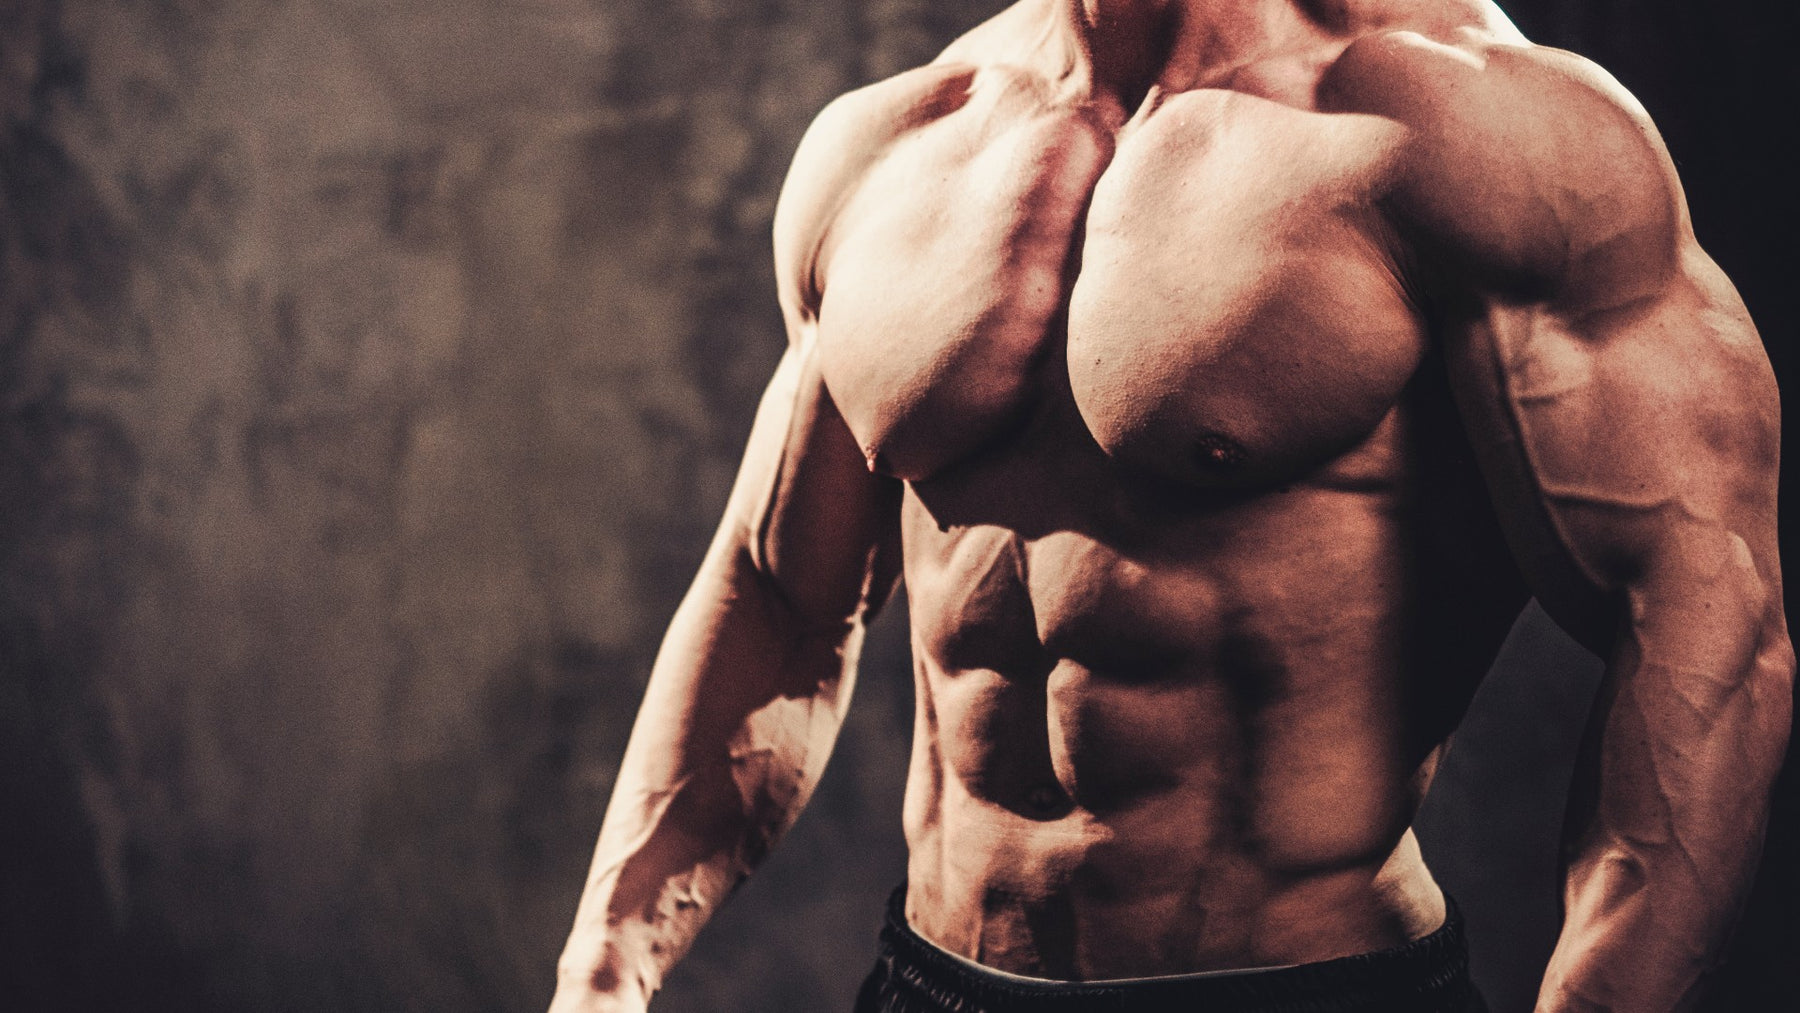 The 4 Best Muscle Building Workout Techniques Youve Never Tried